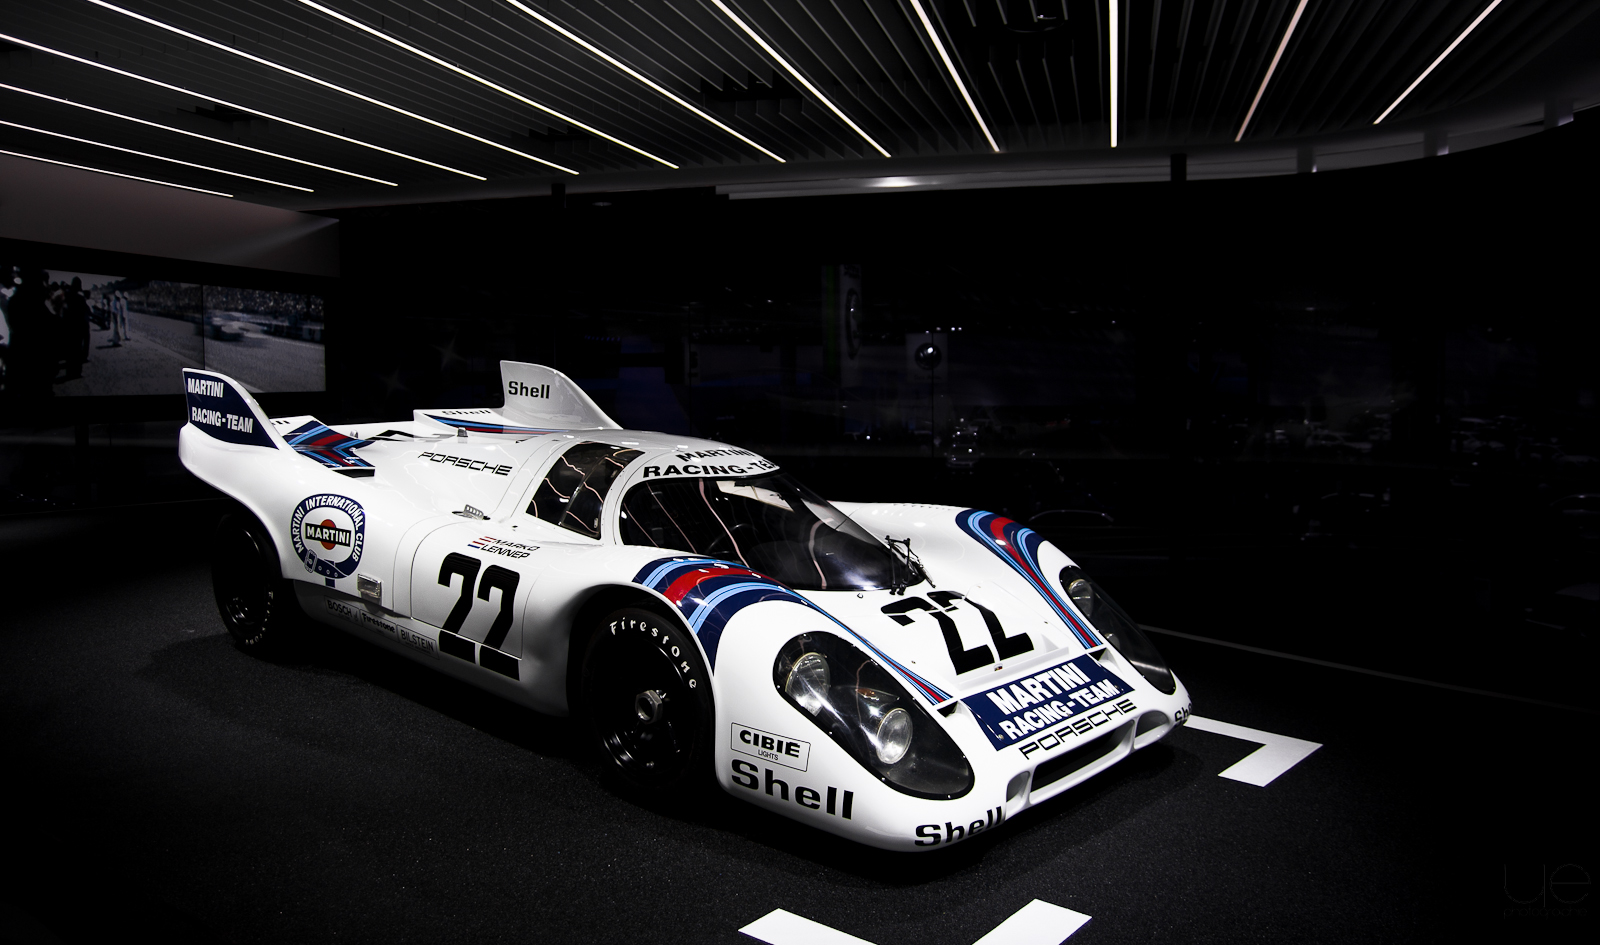 Salon de Francfort – Porsche 917